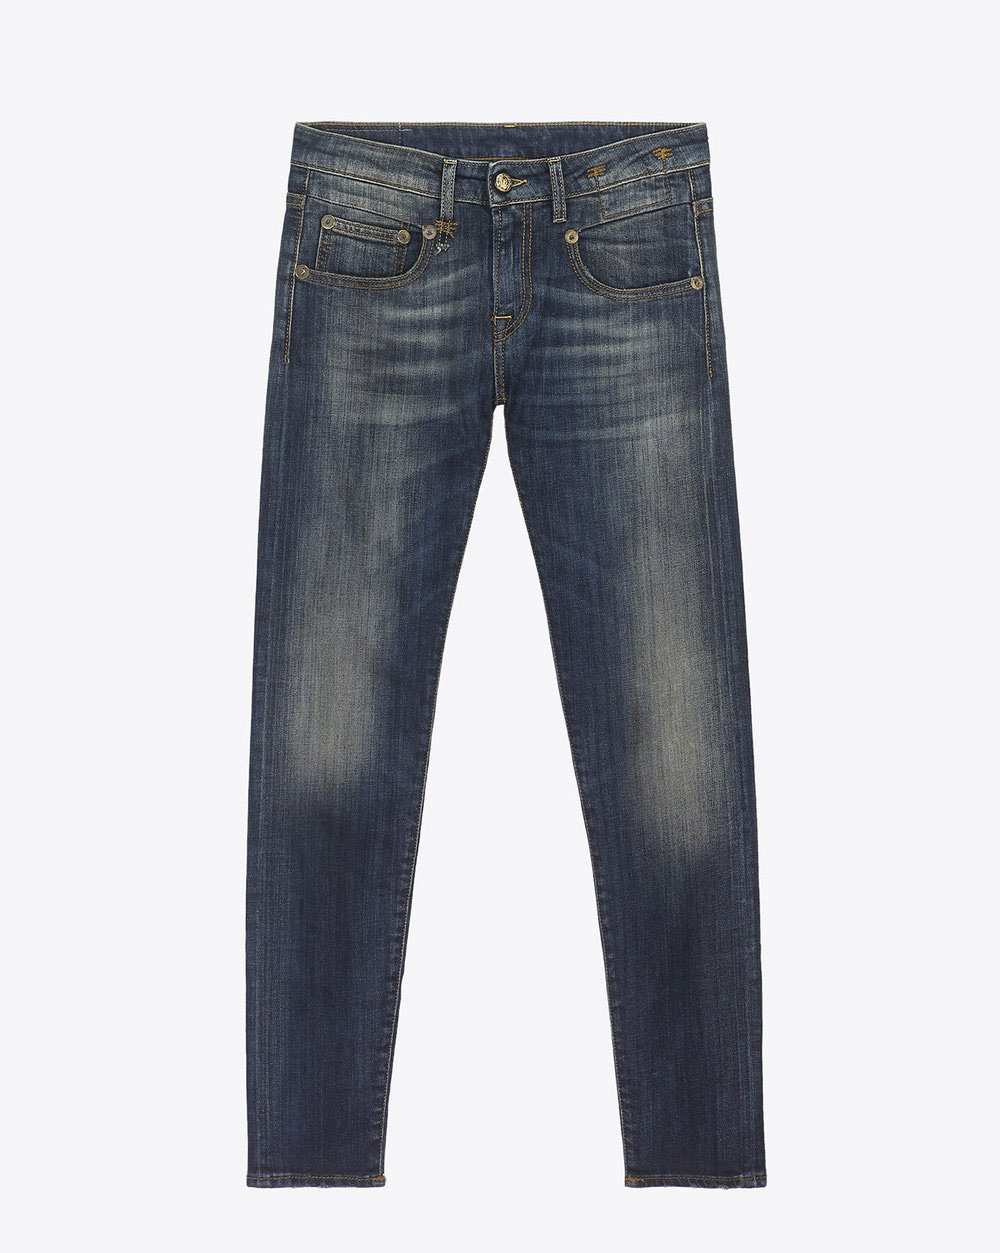 R13 Denim Boy Skinny - Vintage Blue